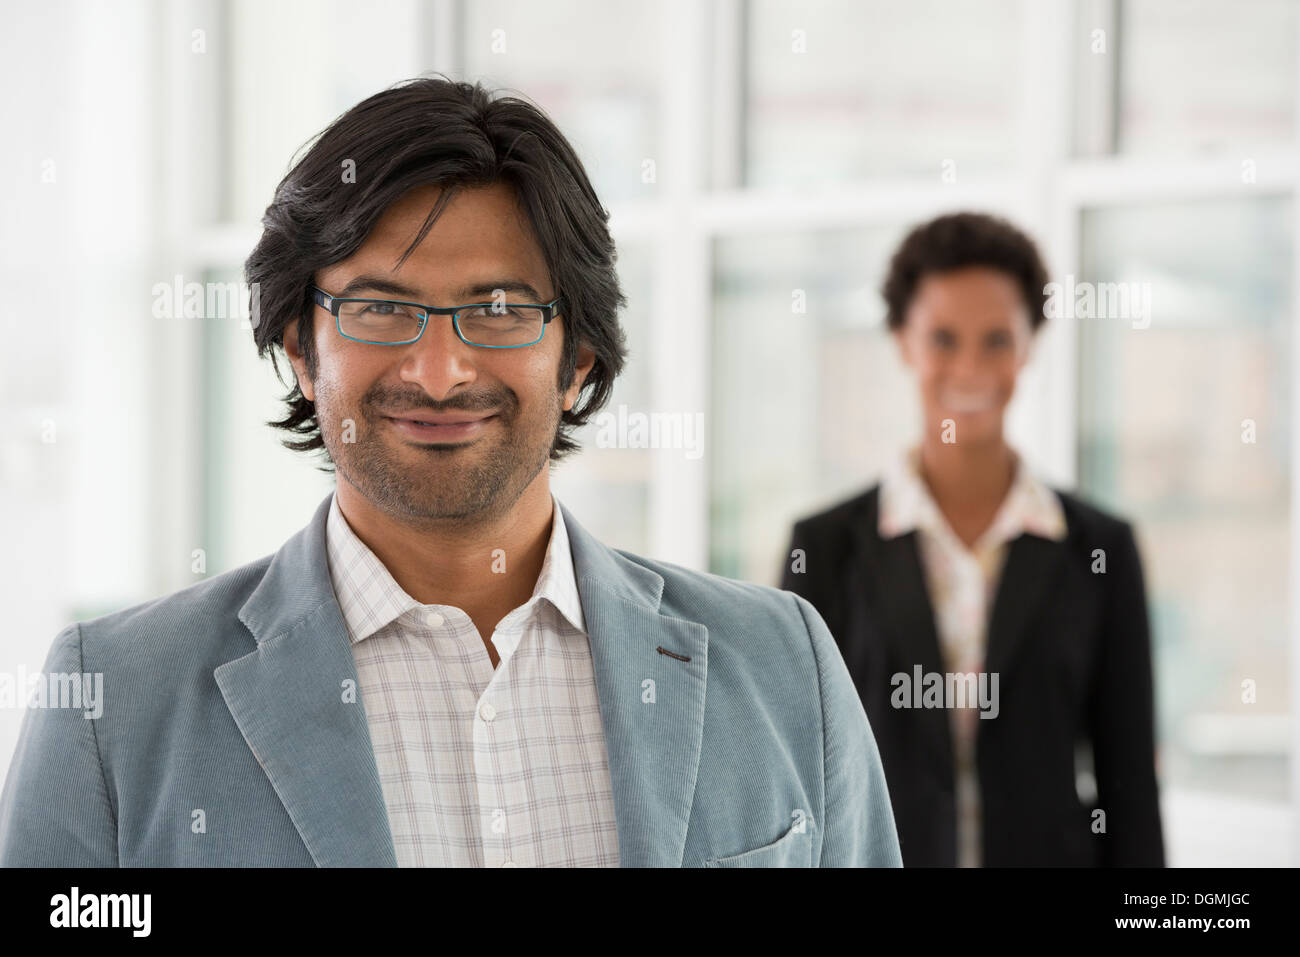 Business people. A man and a woman. - Stock Image